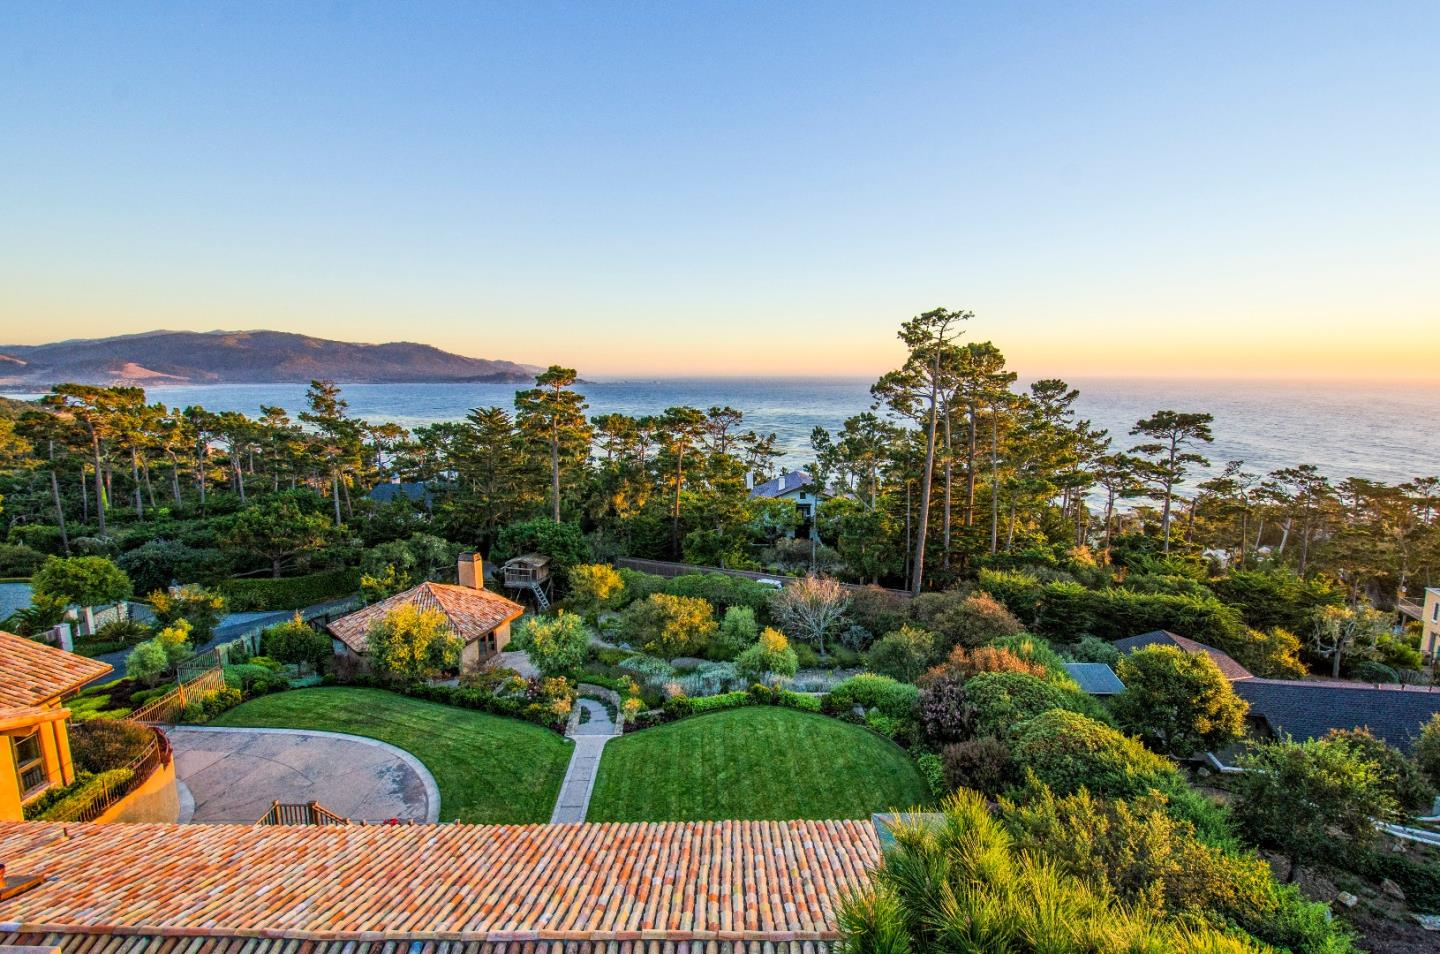 Single Family Home for Sale at 1248 Padre Lane 1248 Padre Lane Pebble Beach, California 93953 United States